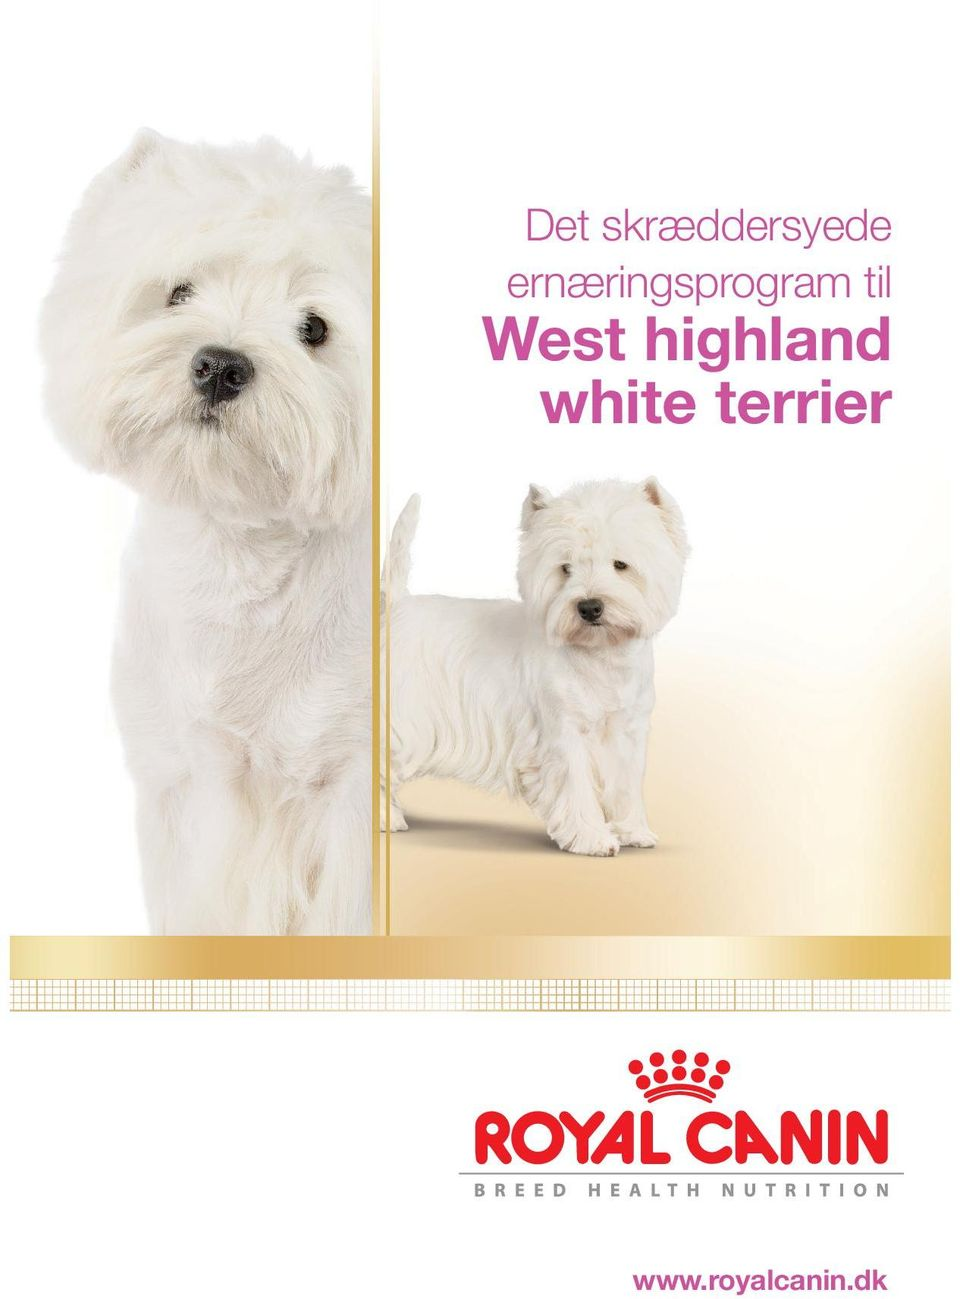 West highland white